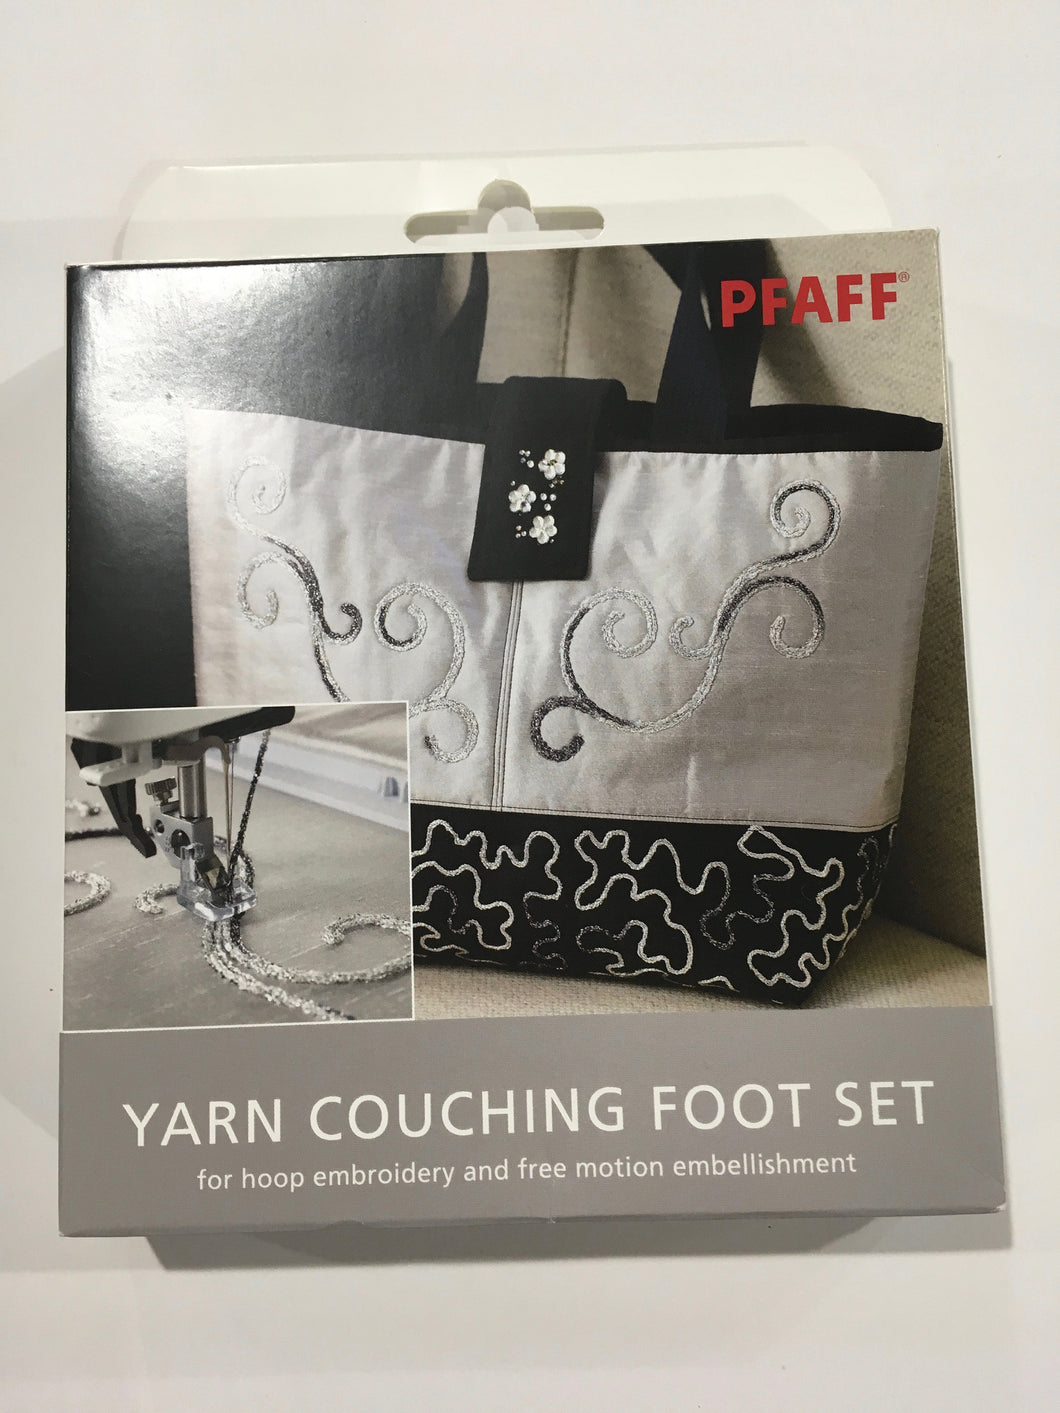 Pfaff Yarn Couching Foot Set